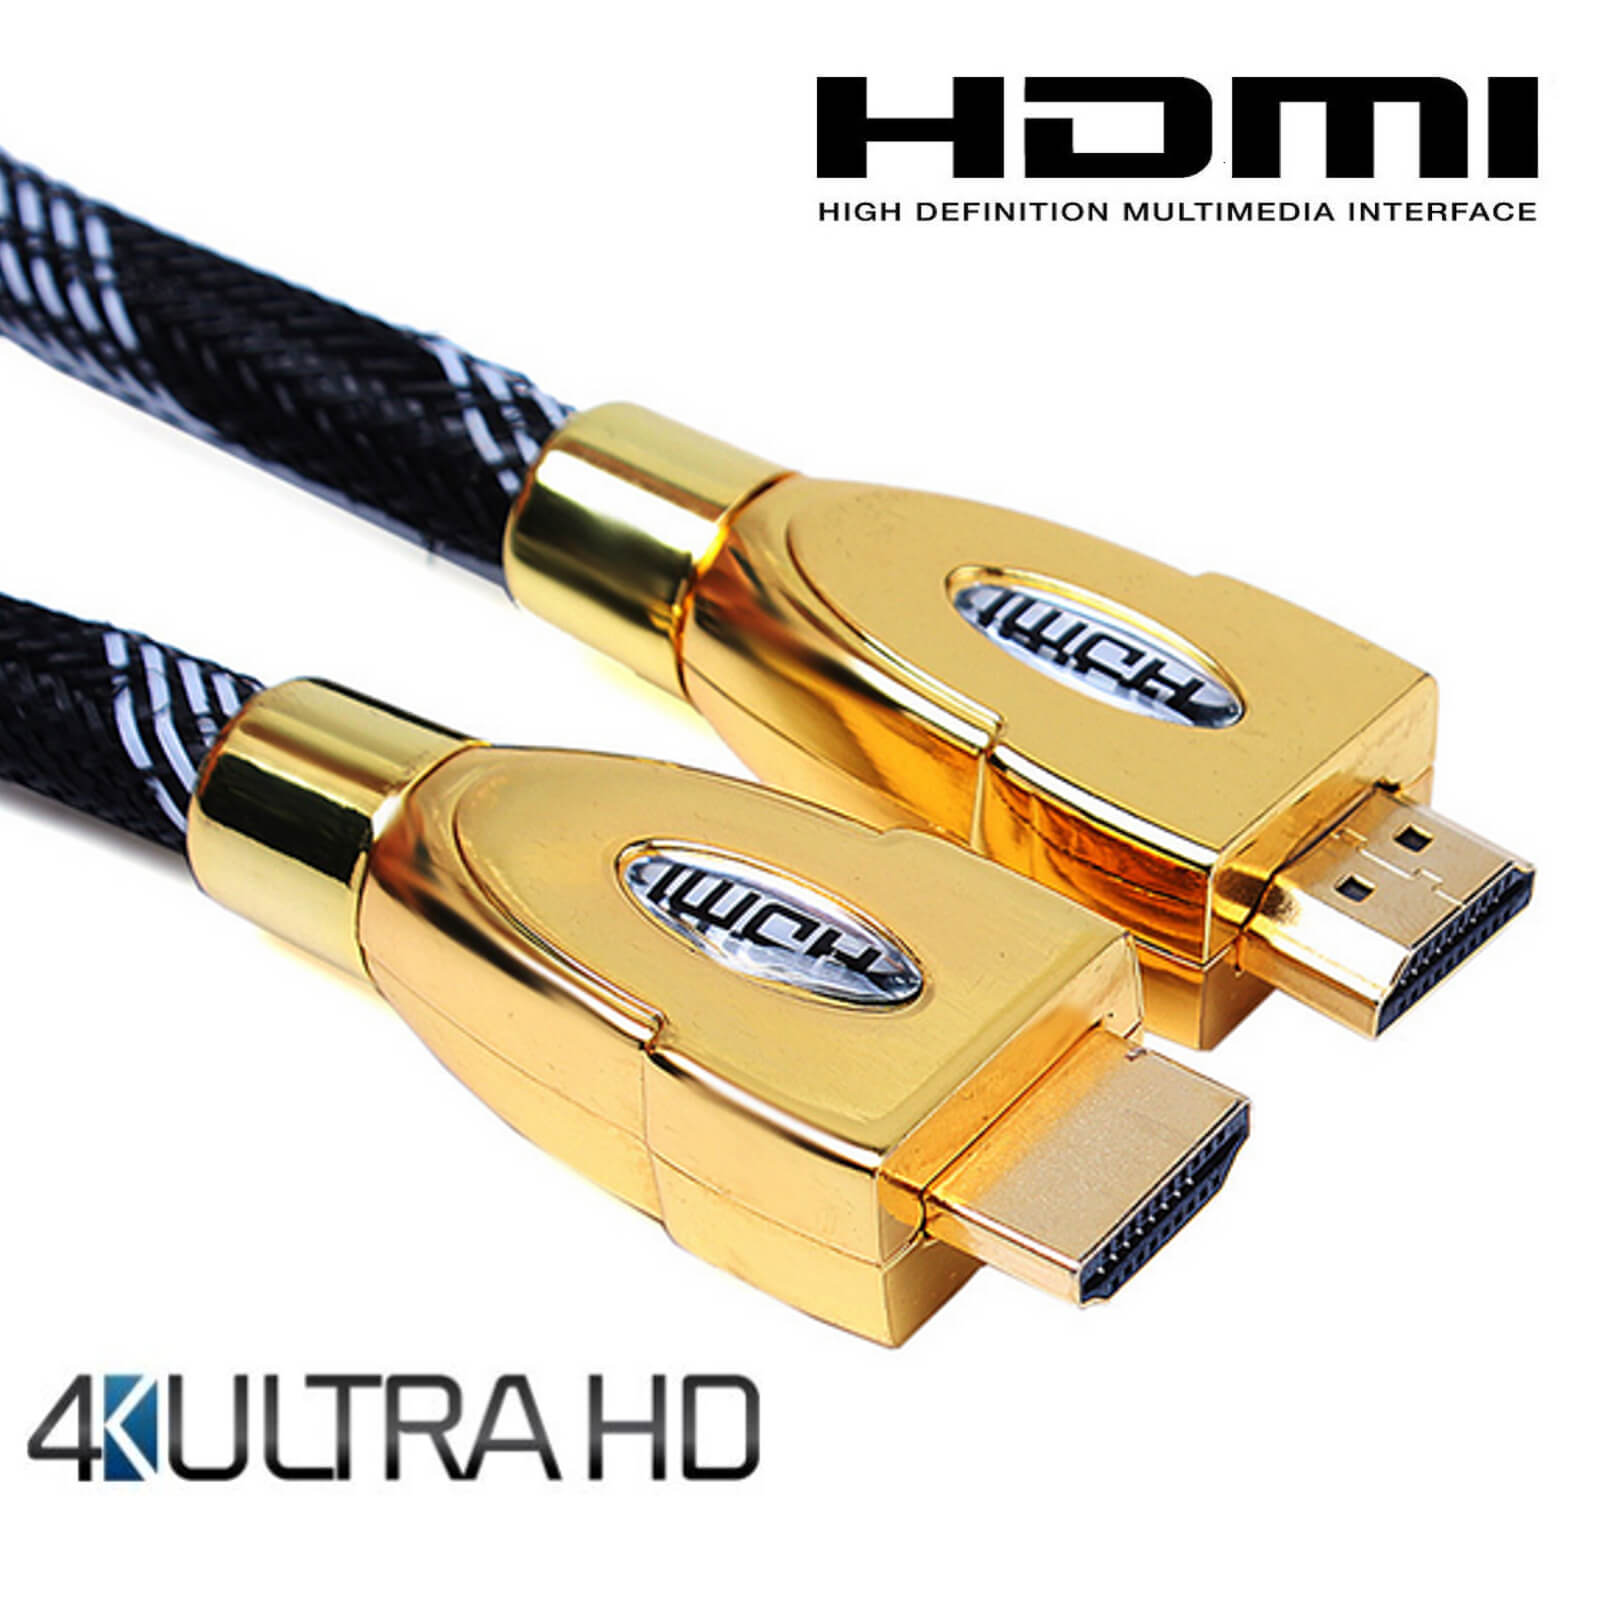 Roku 4 TV HDMI to HDMI 4K Ultra HD TV 4m Gold Lead Wire Cord Cable ...